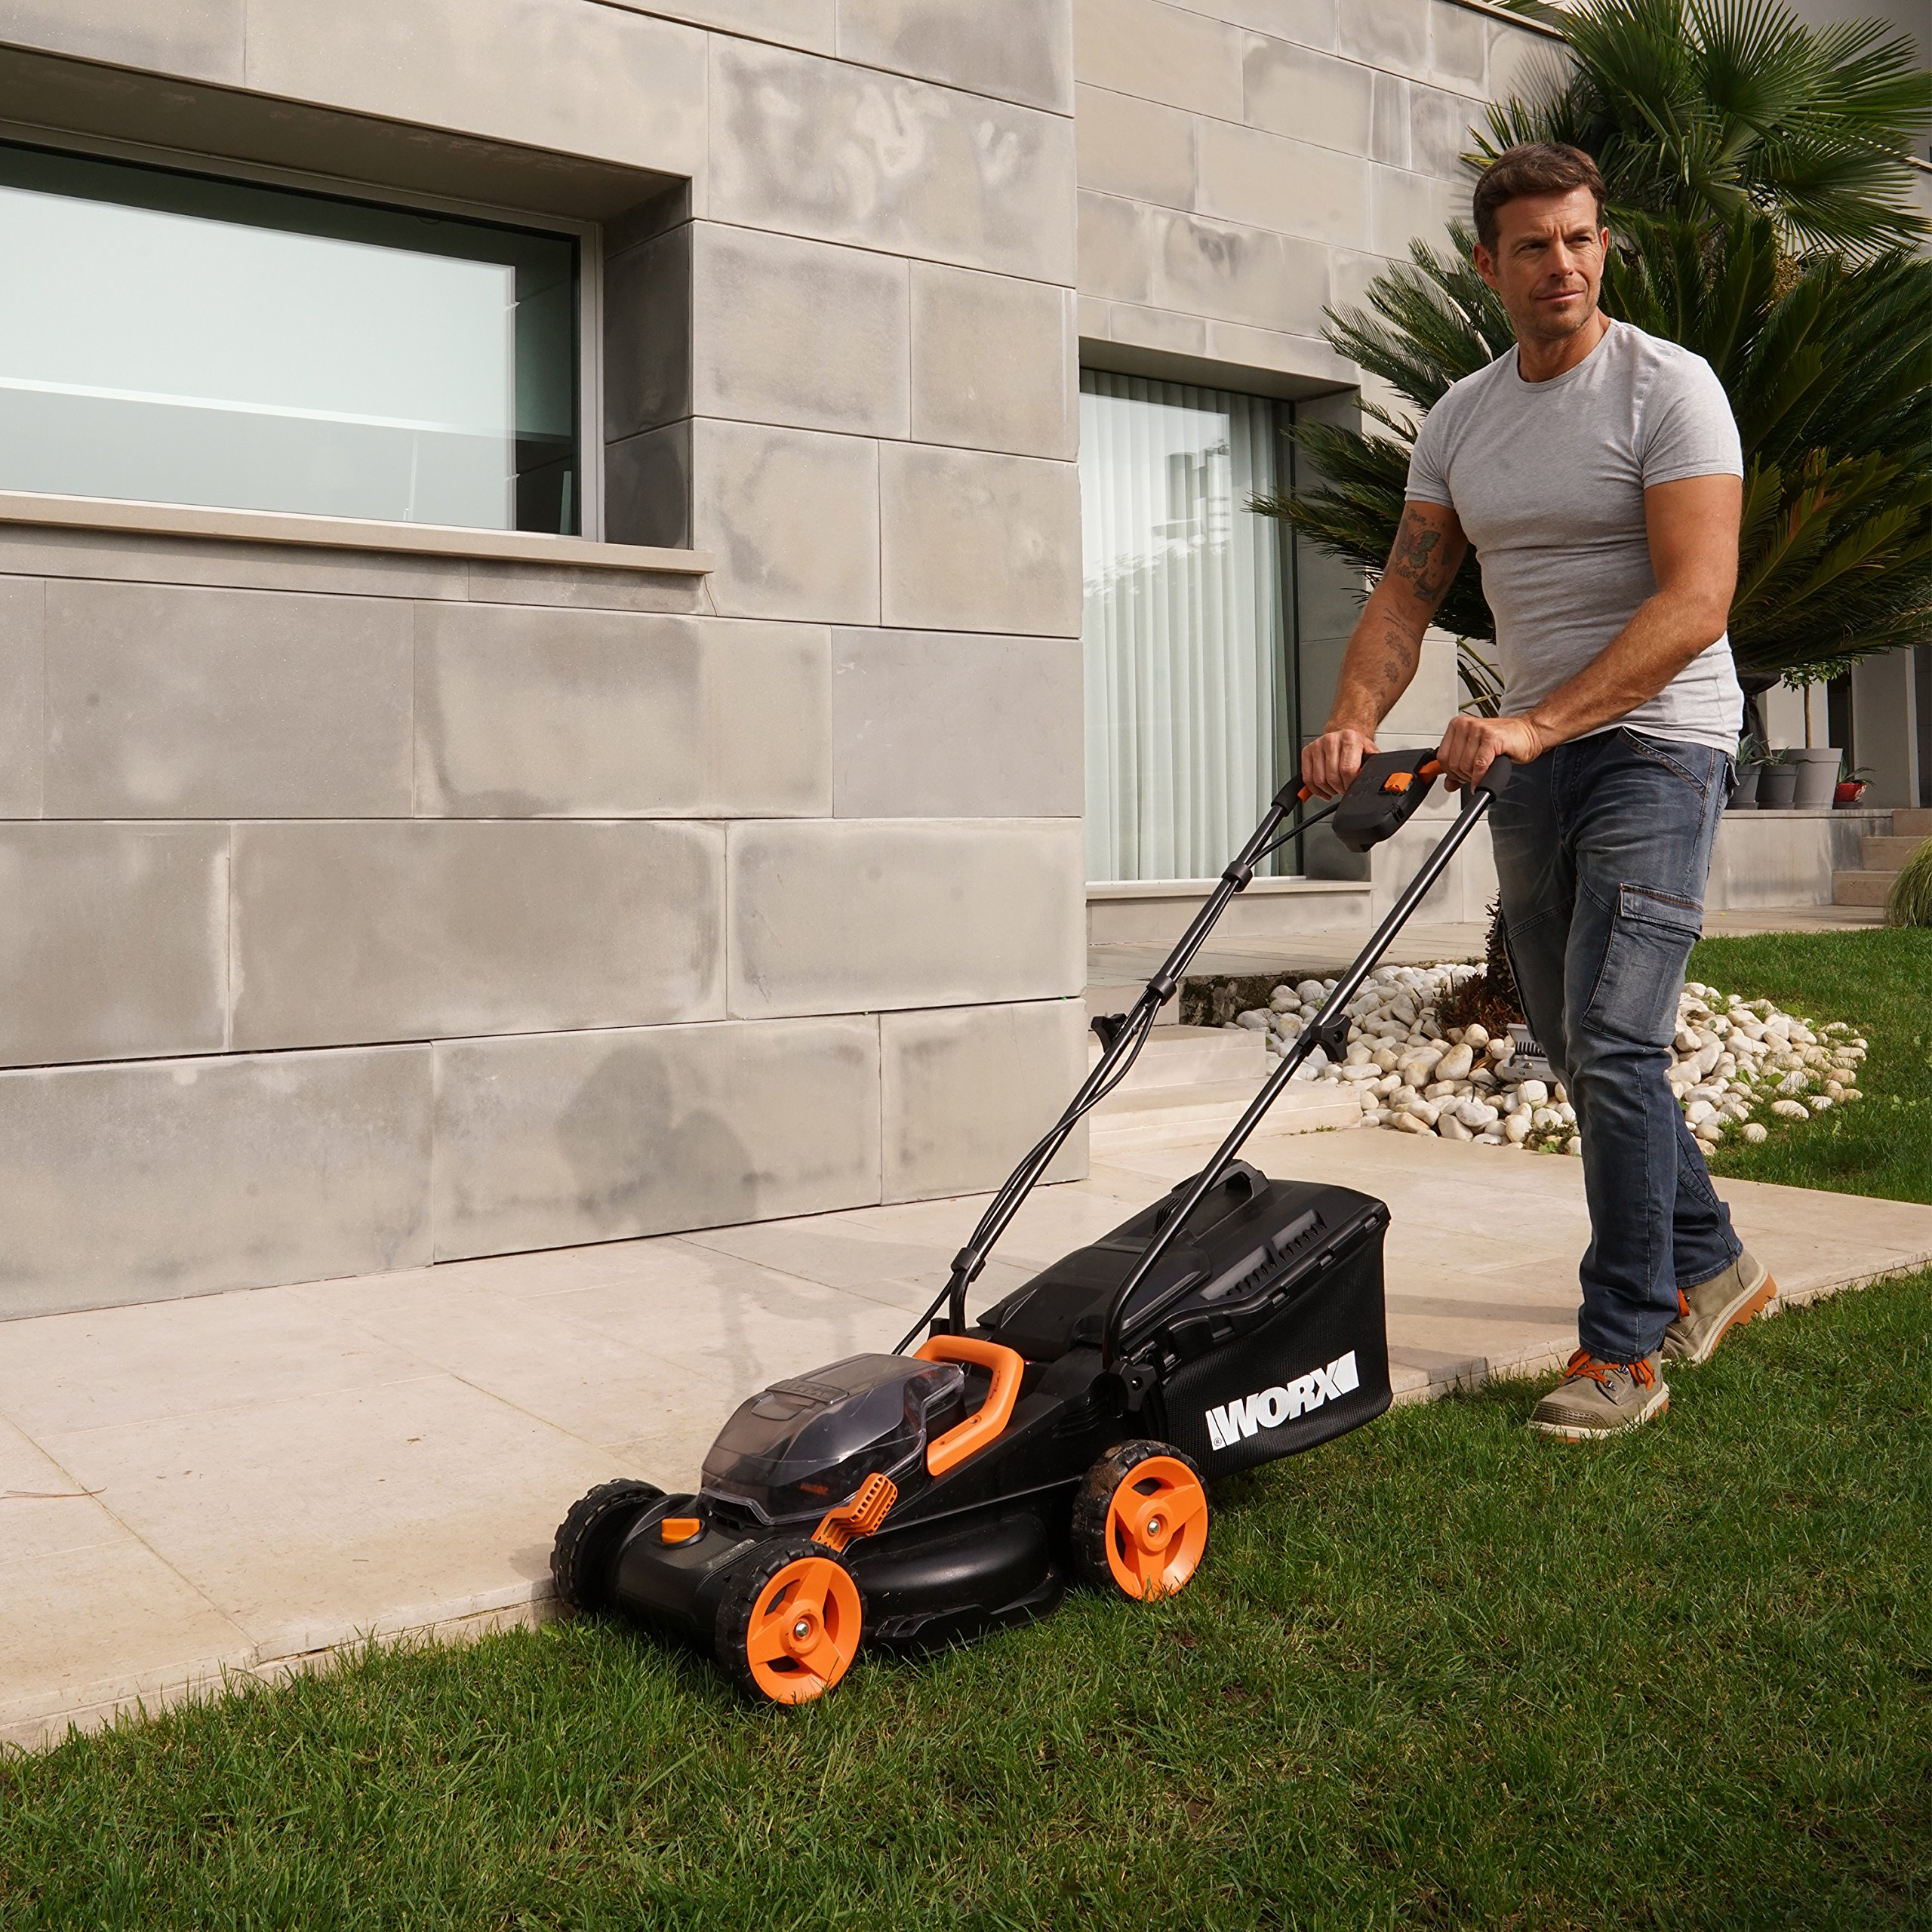 Worx WG779 2x20V (4.0AH) Cordless 14'' Lawn Mower with Mulching Capabilities and Intellicut, Dual Charger, 2 Batteries